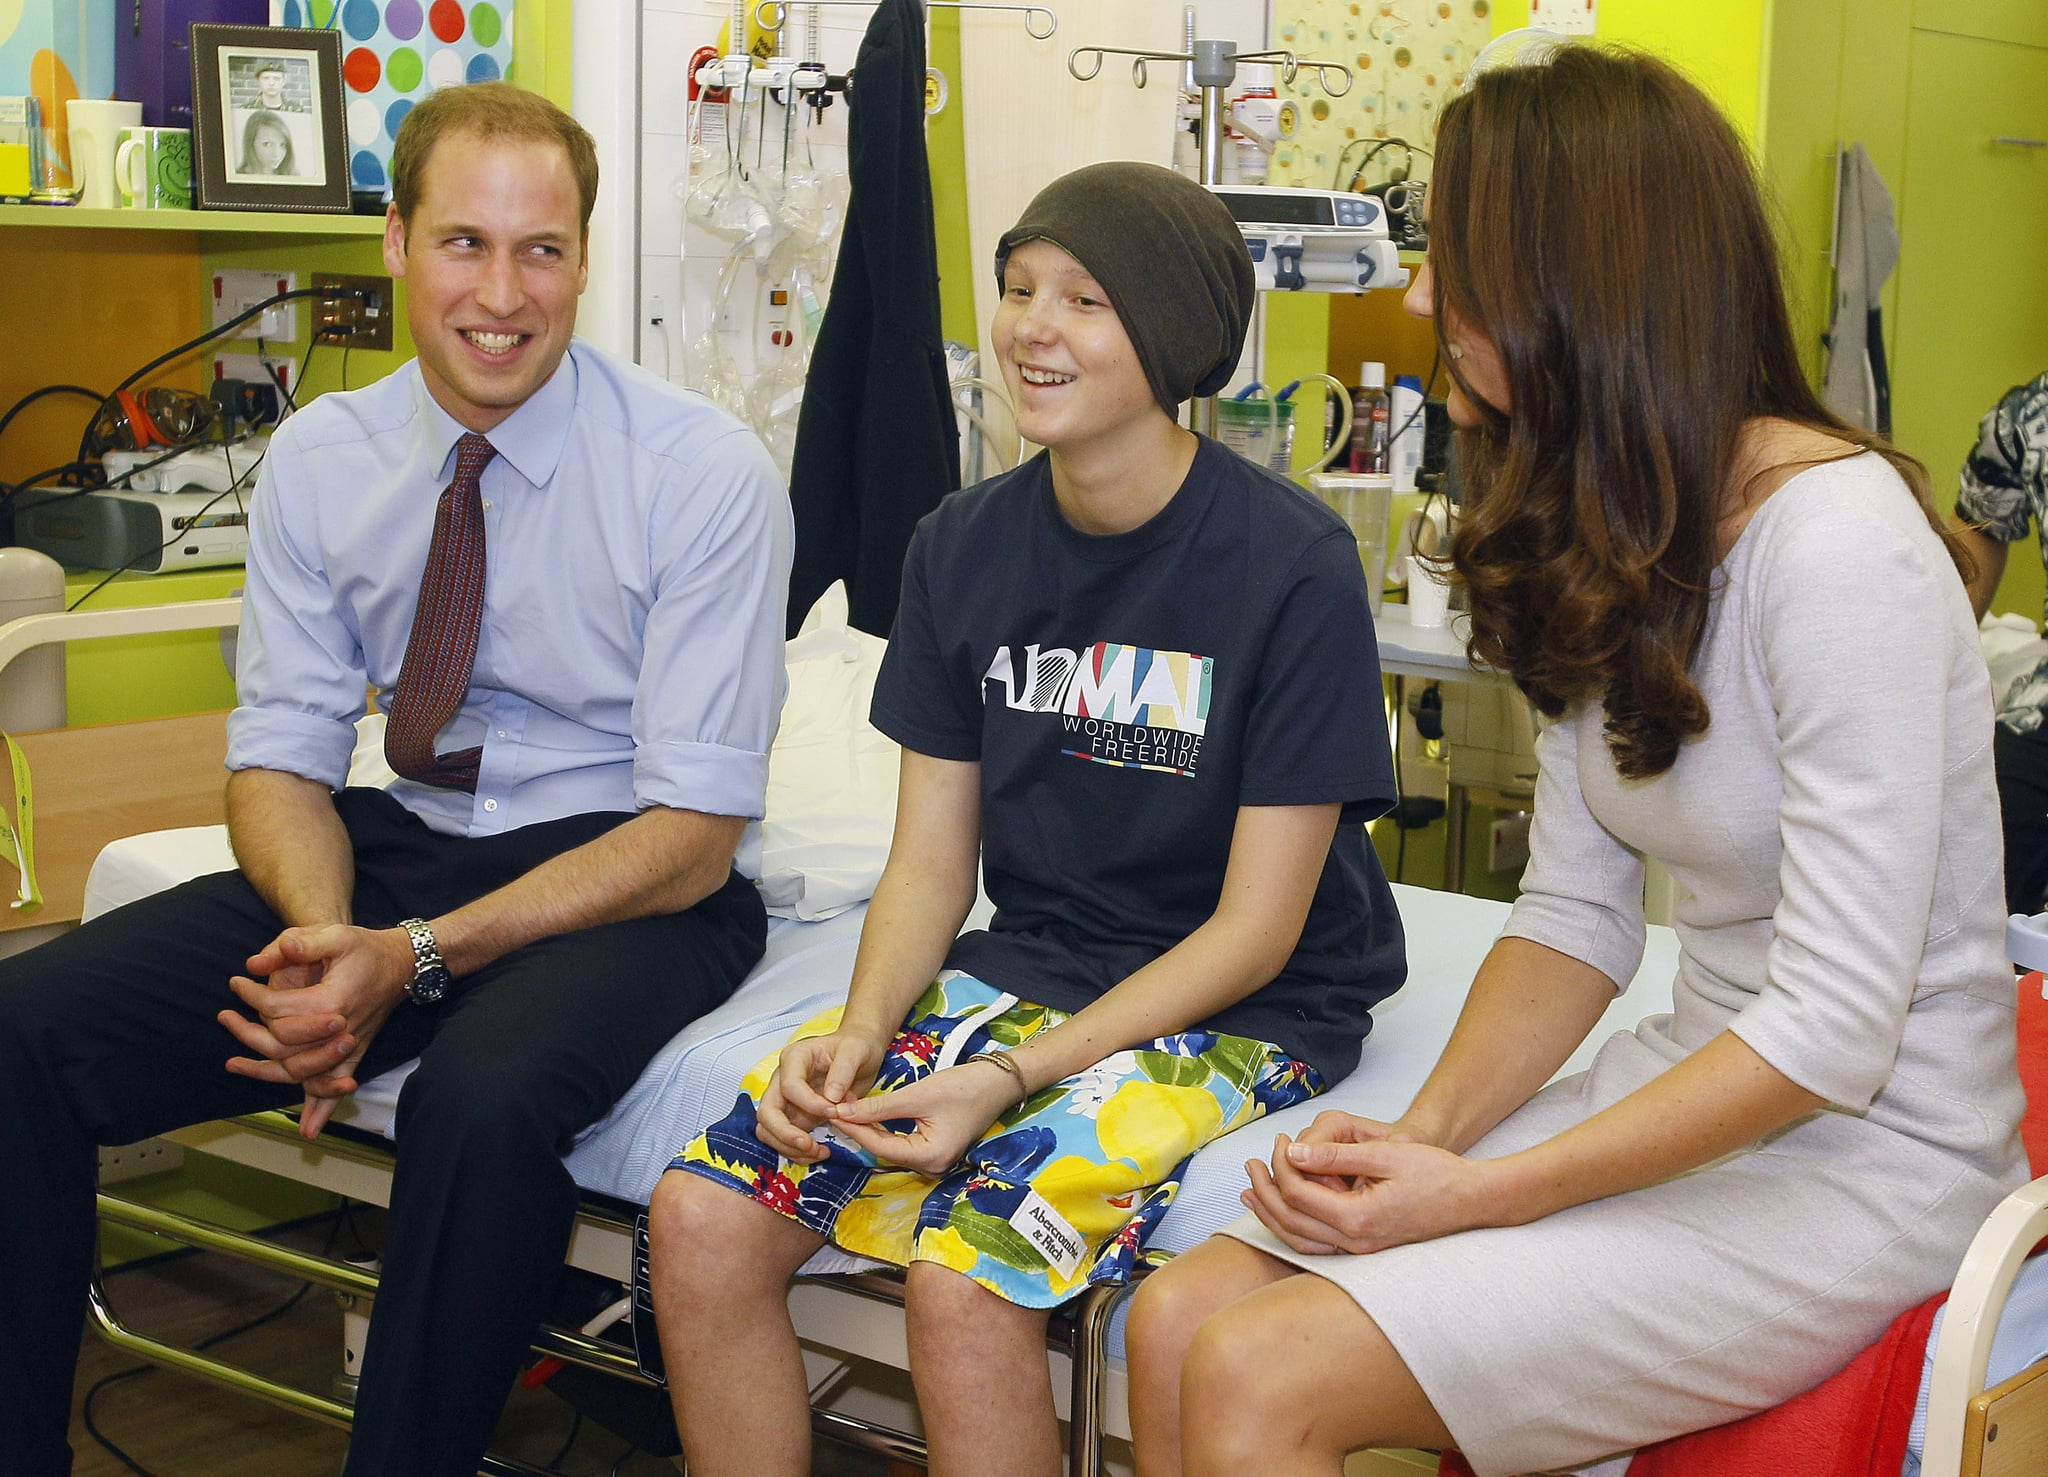 Prince William and Kate Middleton visited with patients at a youth cancer center.